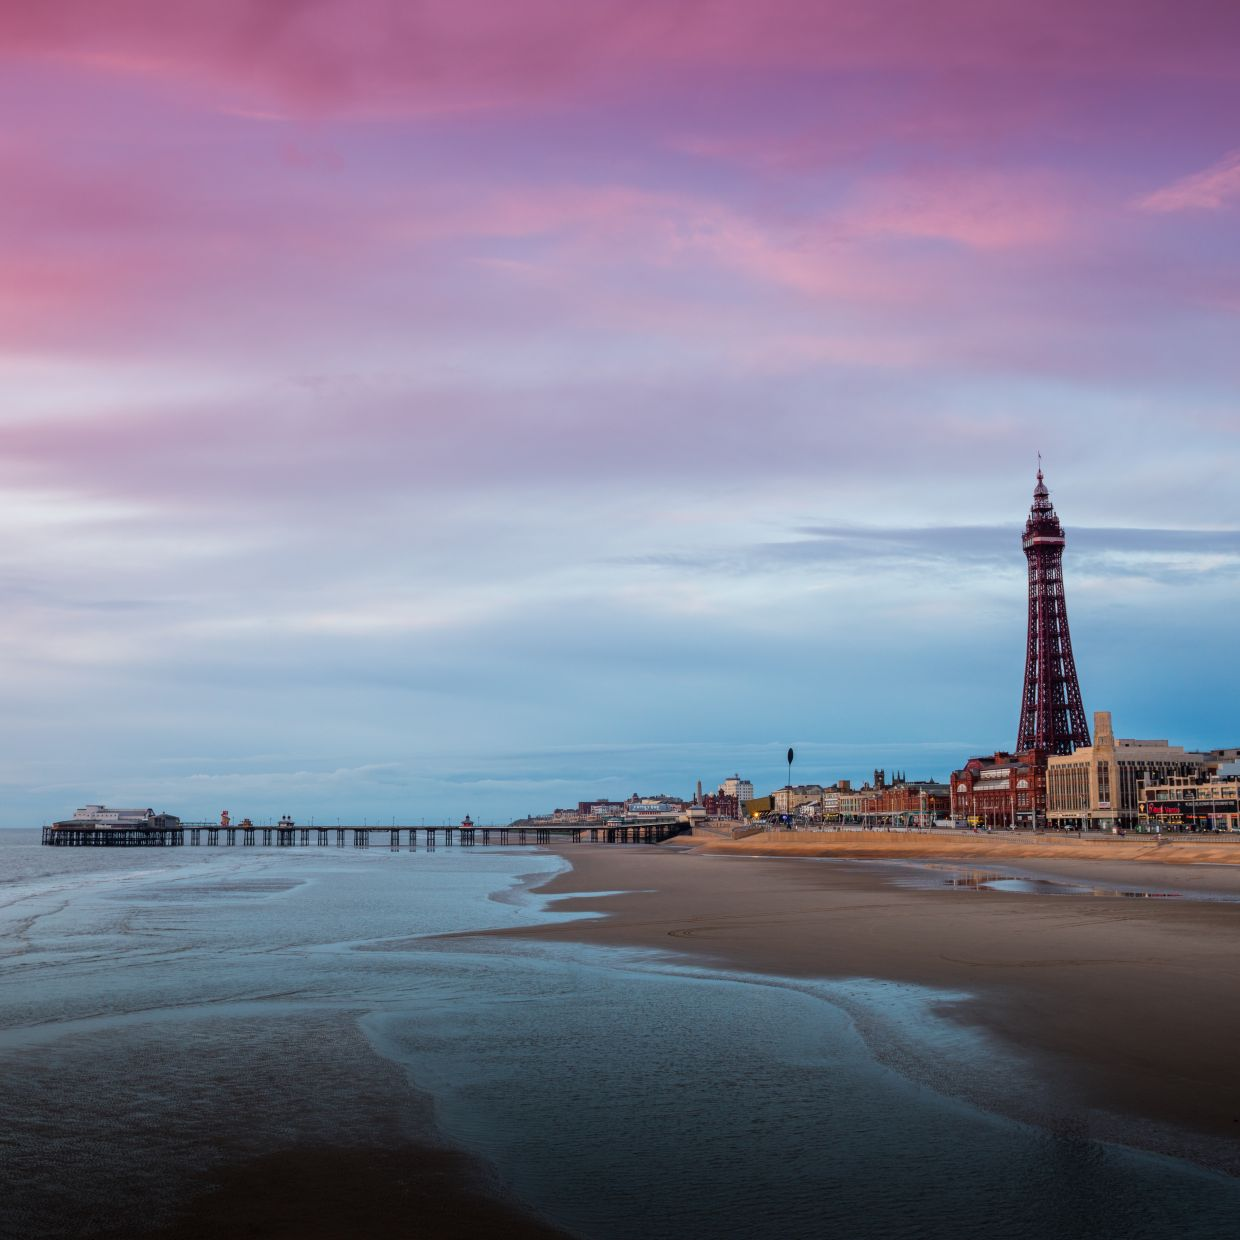 Day Two - A Day Trip To Blackpool